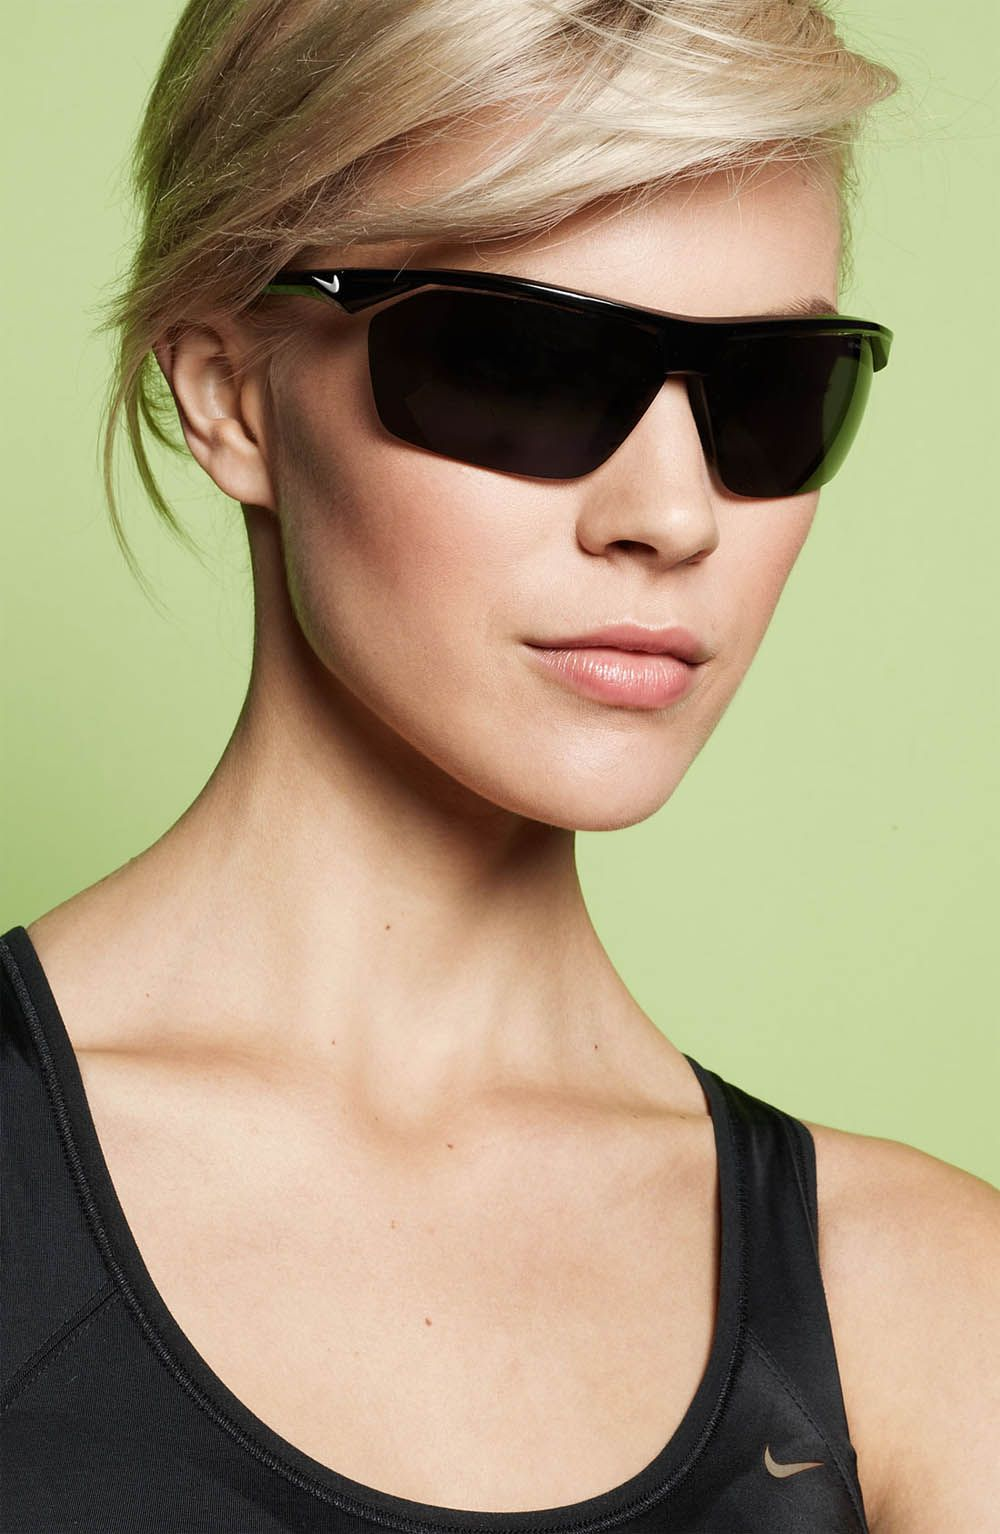 ce700748782 running sunglasses womens - Google Search https   tmblr.co ZnVlHd2OD7q6E  Running